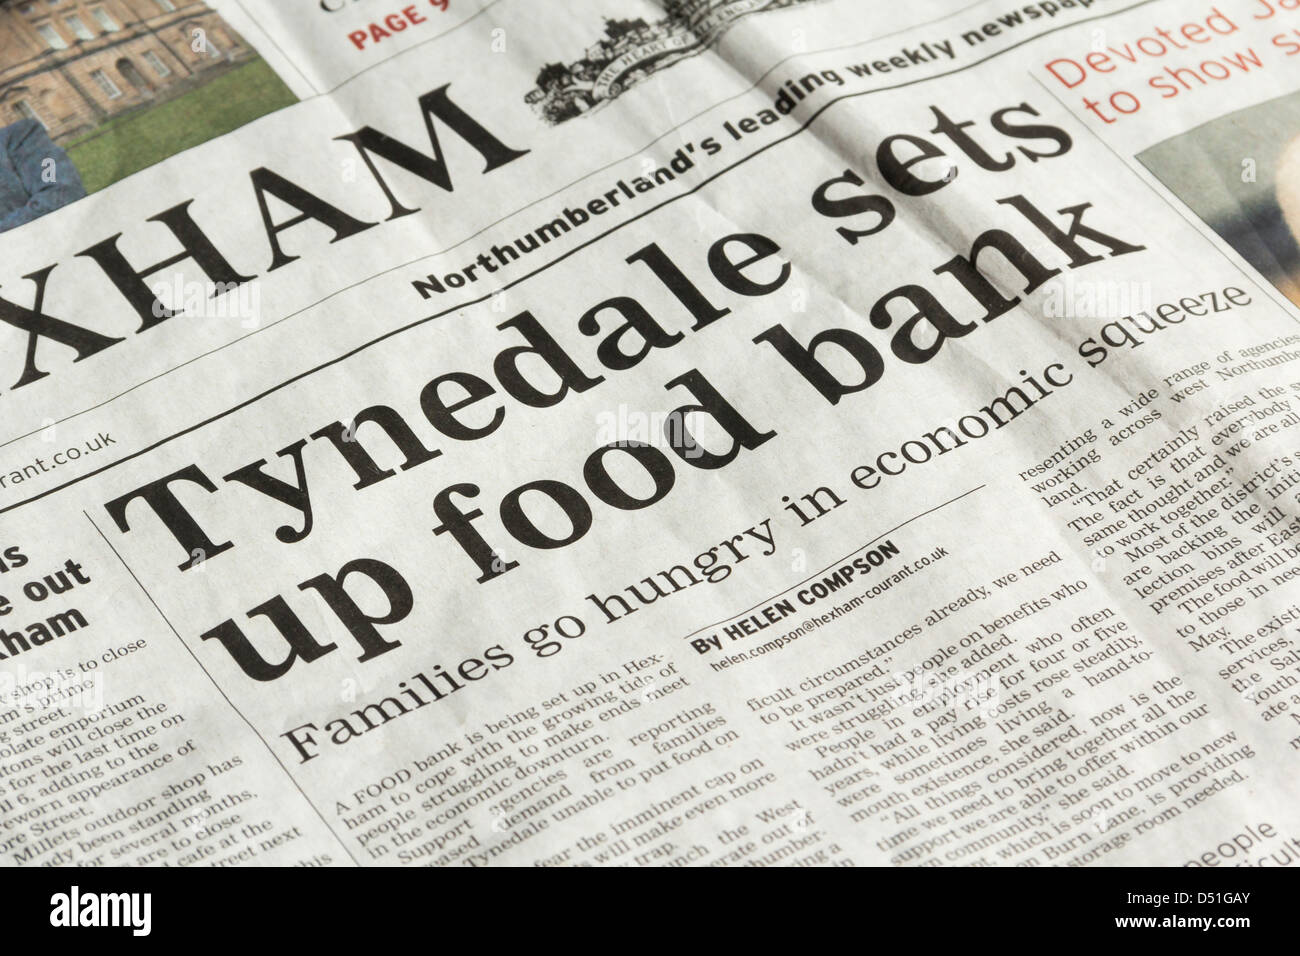 Headline On The Setting Up Of A Food Bank In Tynedale Stock Photo ...